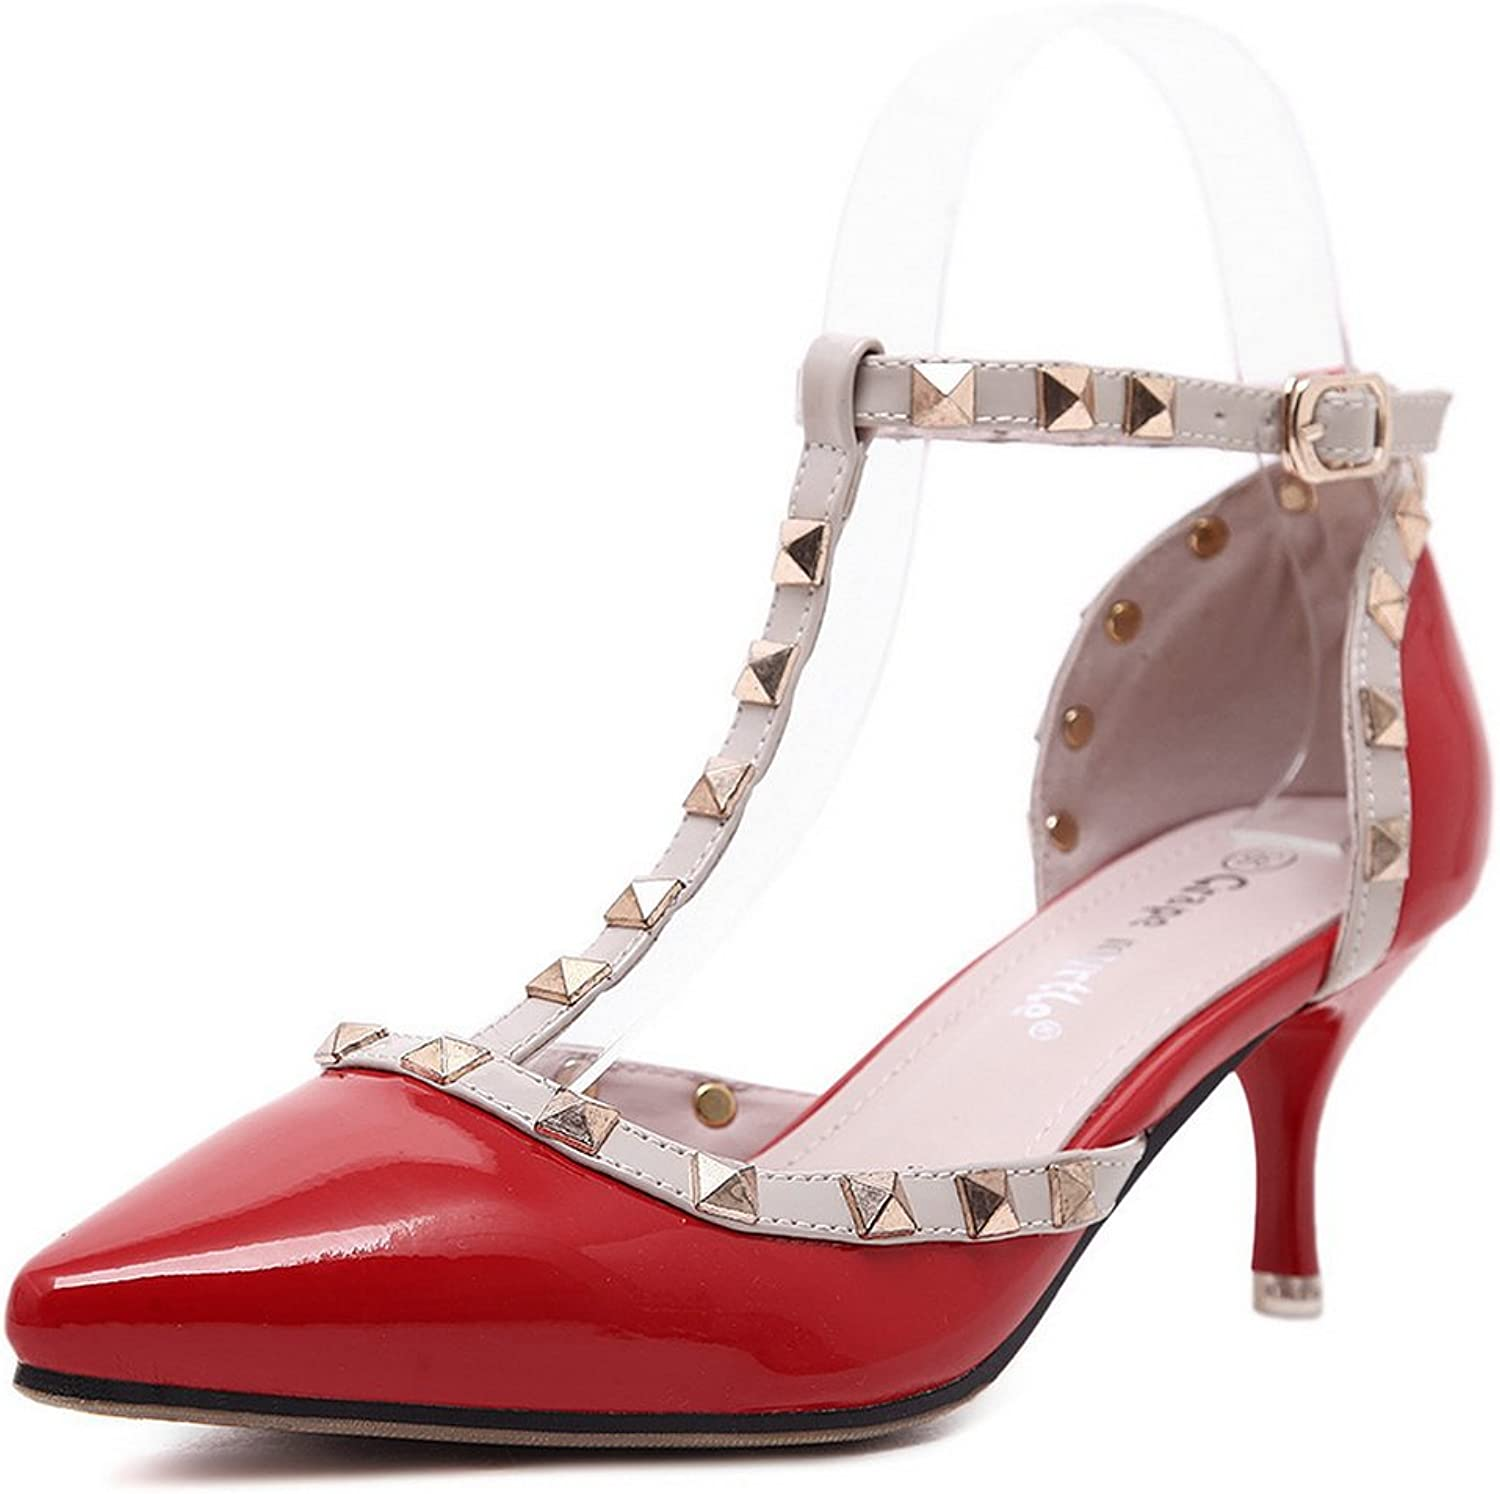 1TO9 Womens Grommets Pointed-Toe Buckle Urethane Pumps shoes